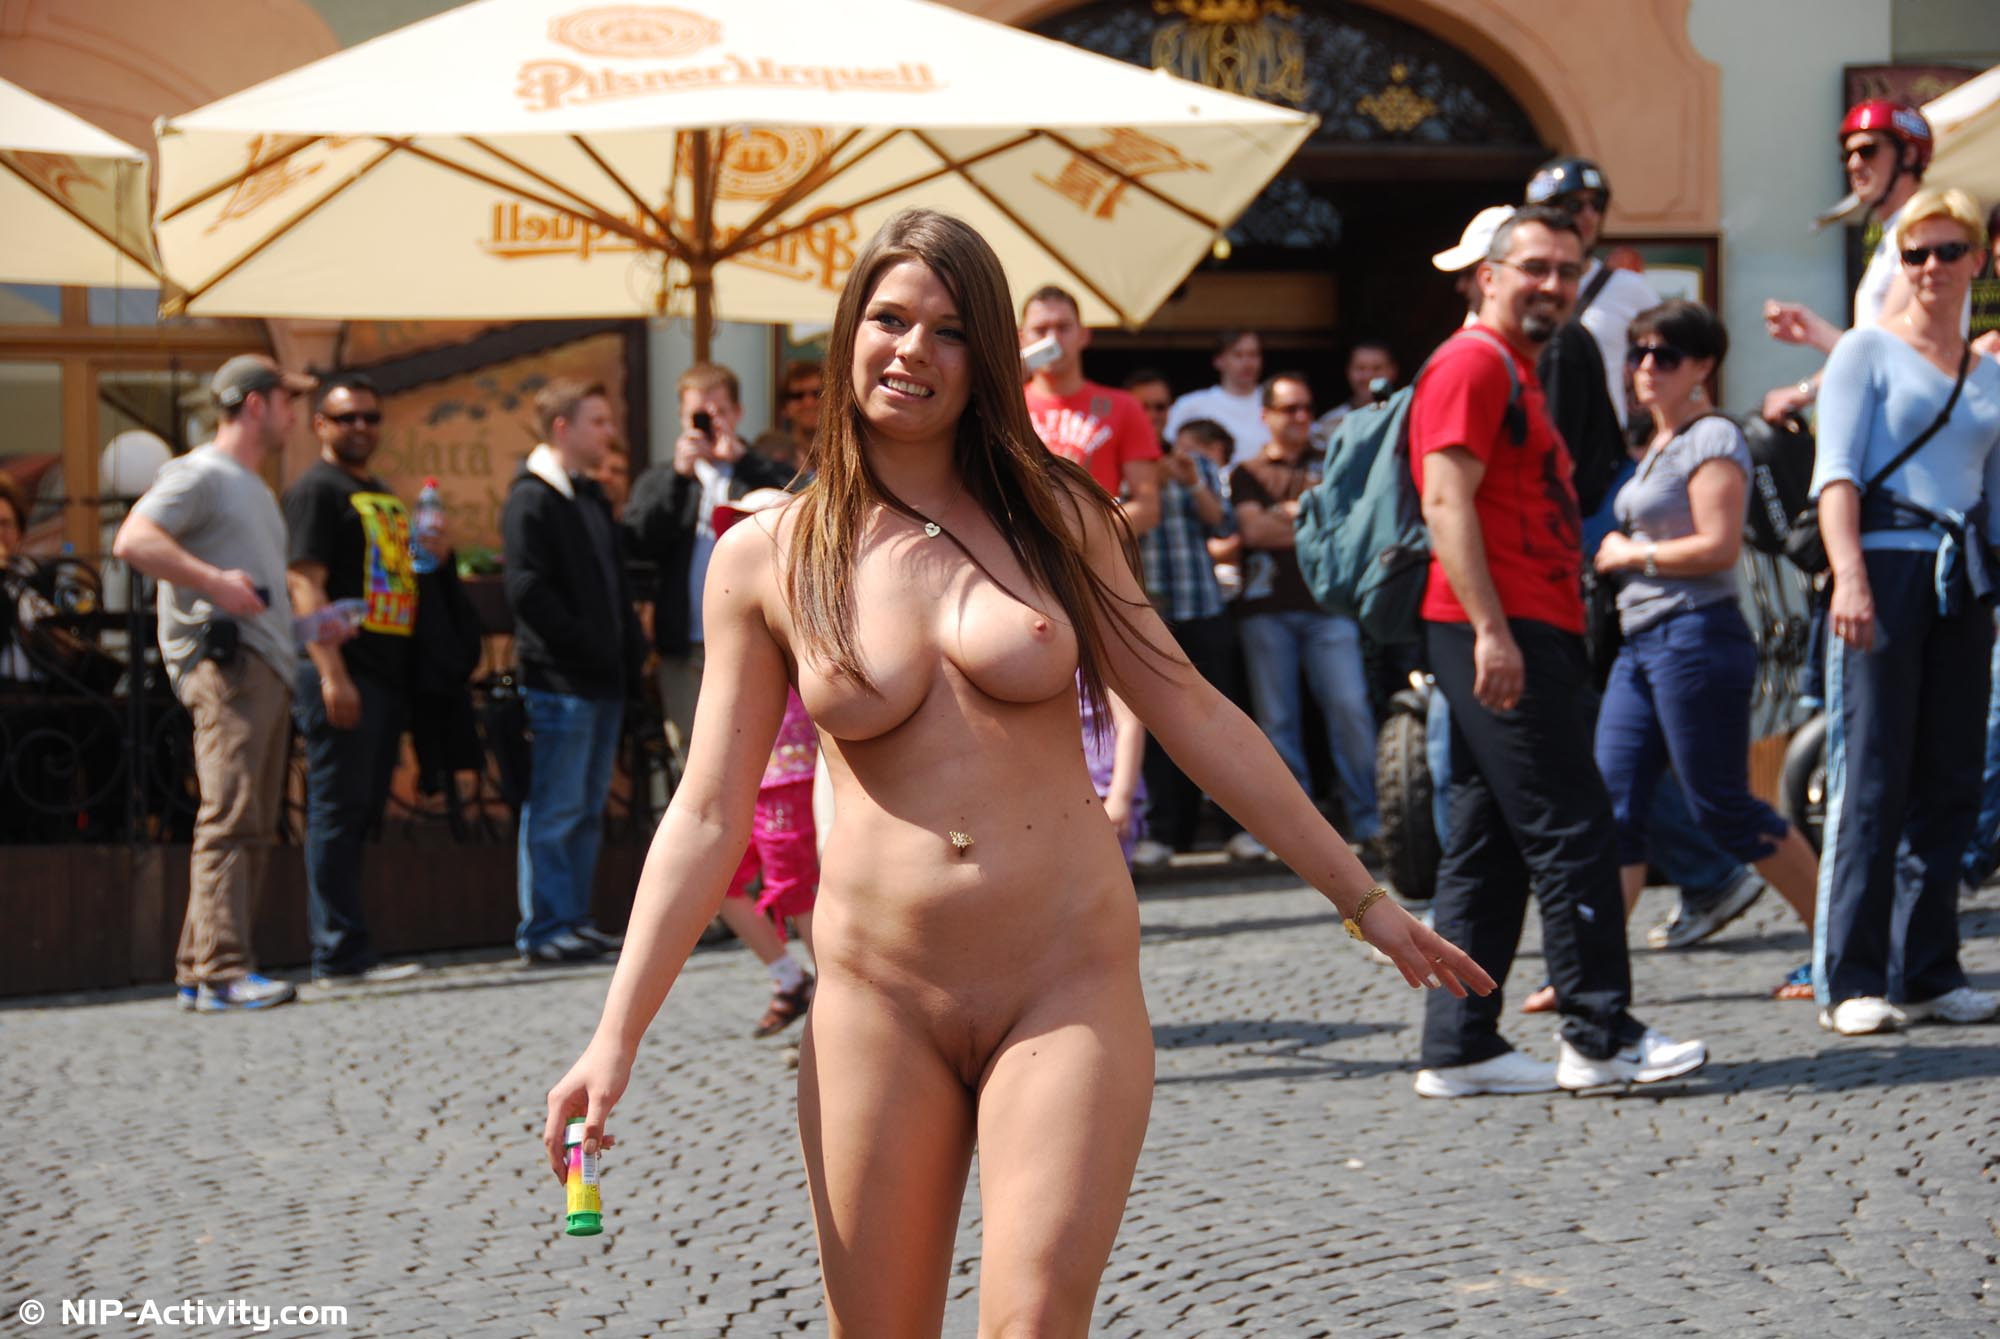 Talk, what Nude in public nip